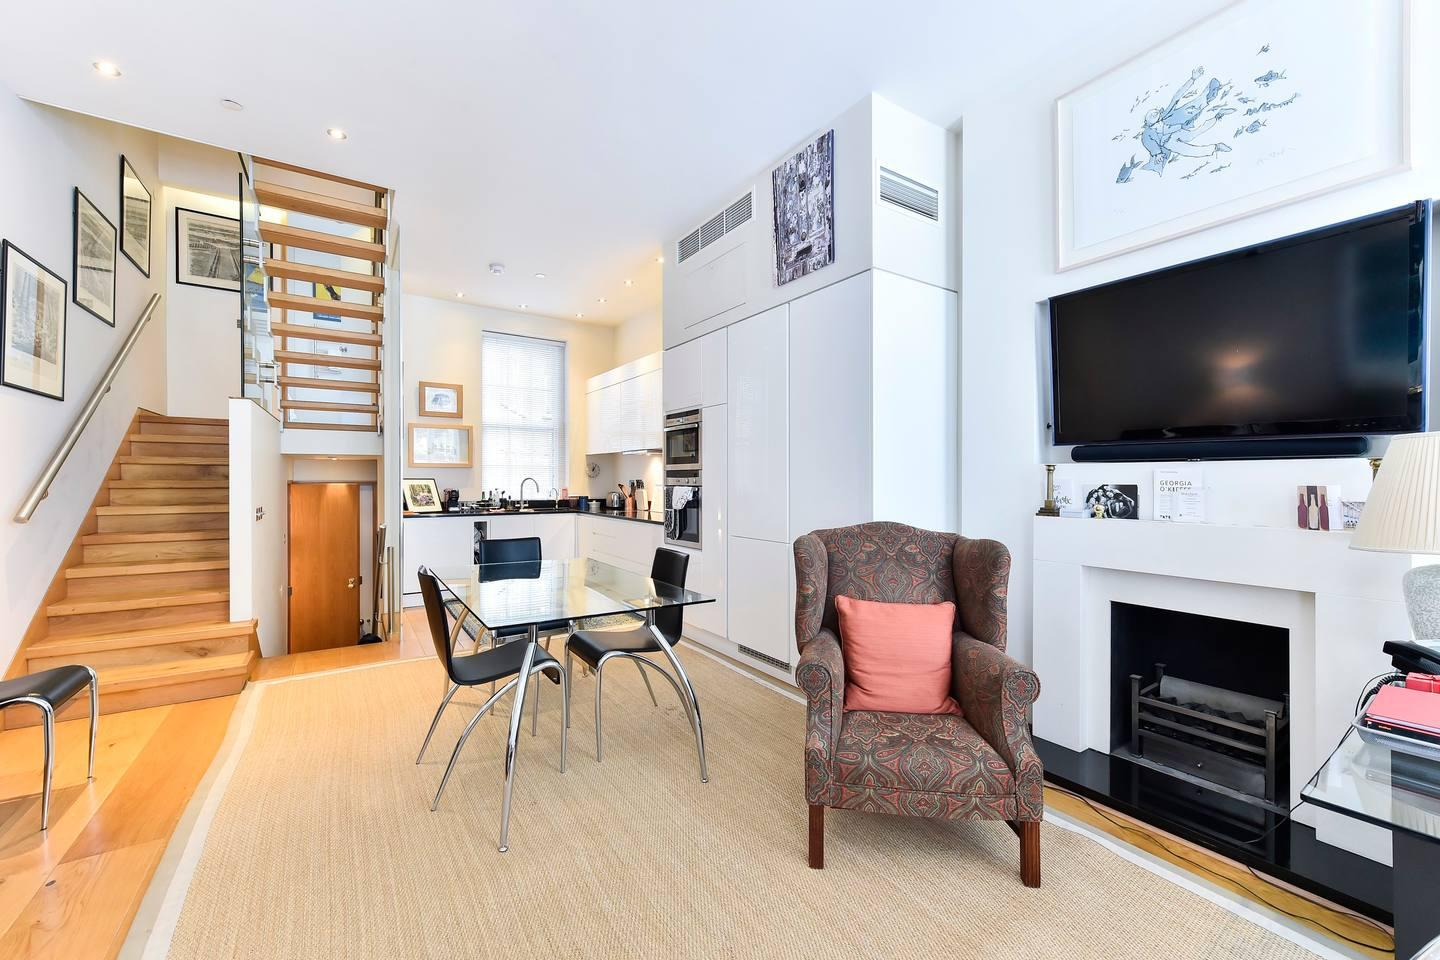 Property Image 1 - Elegant Pimlico flat for 6 guests w/ rooftop terrace